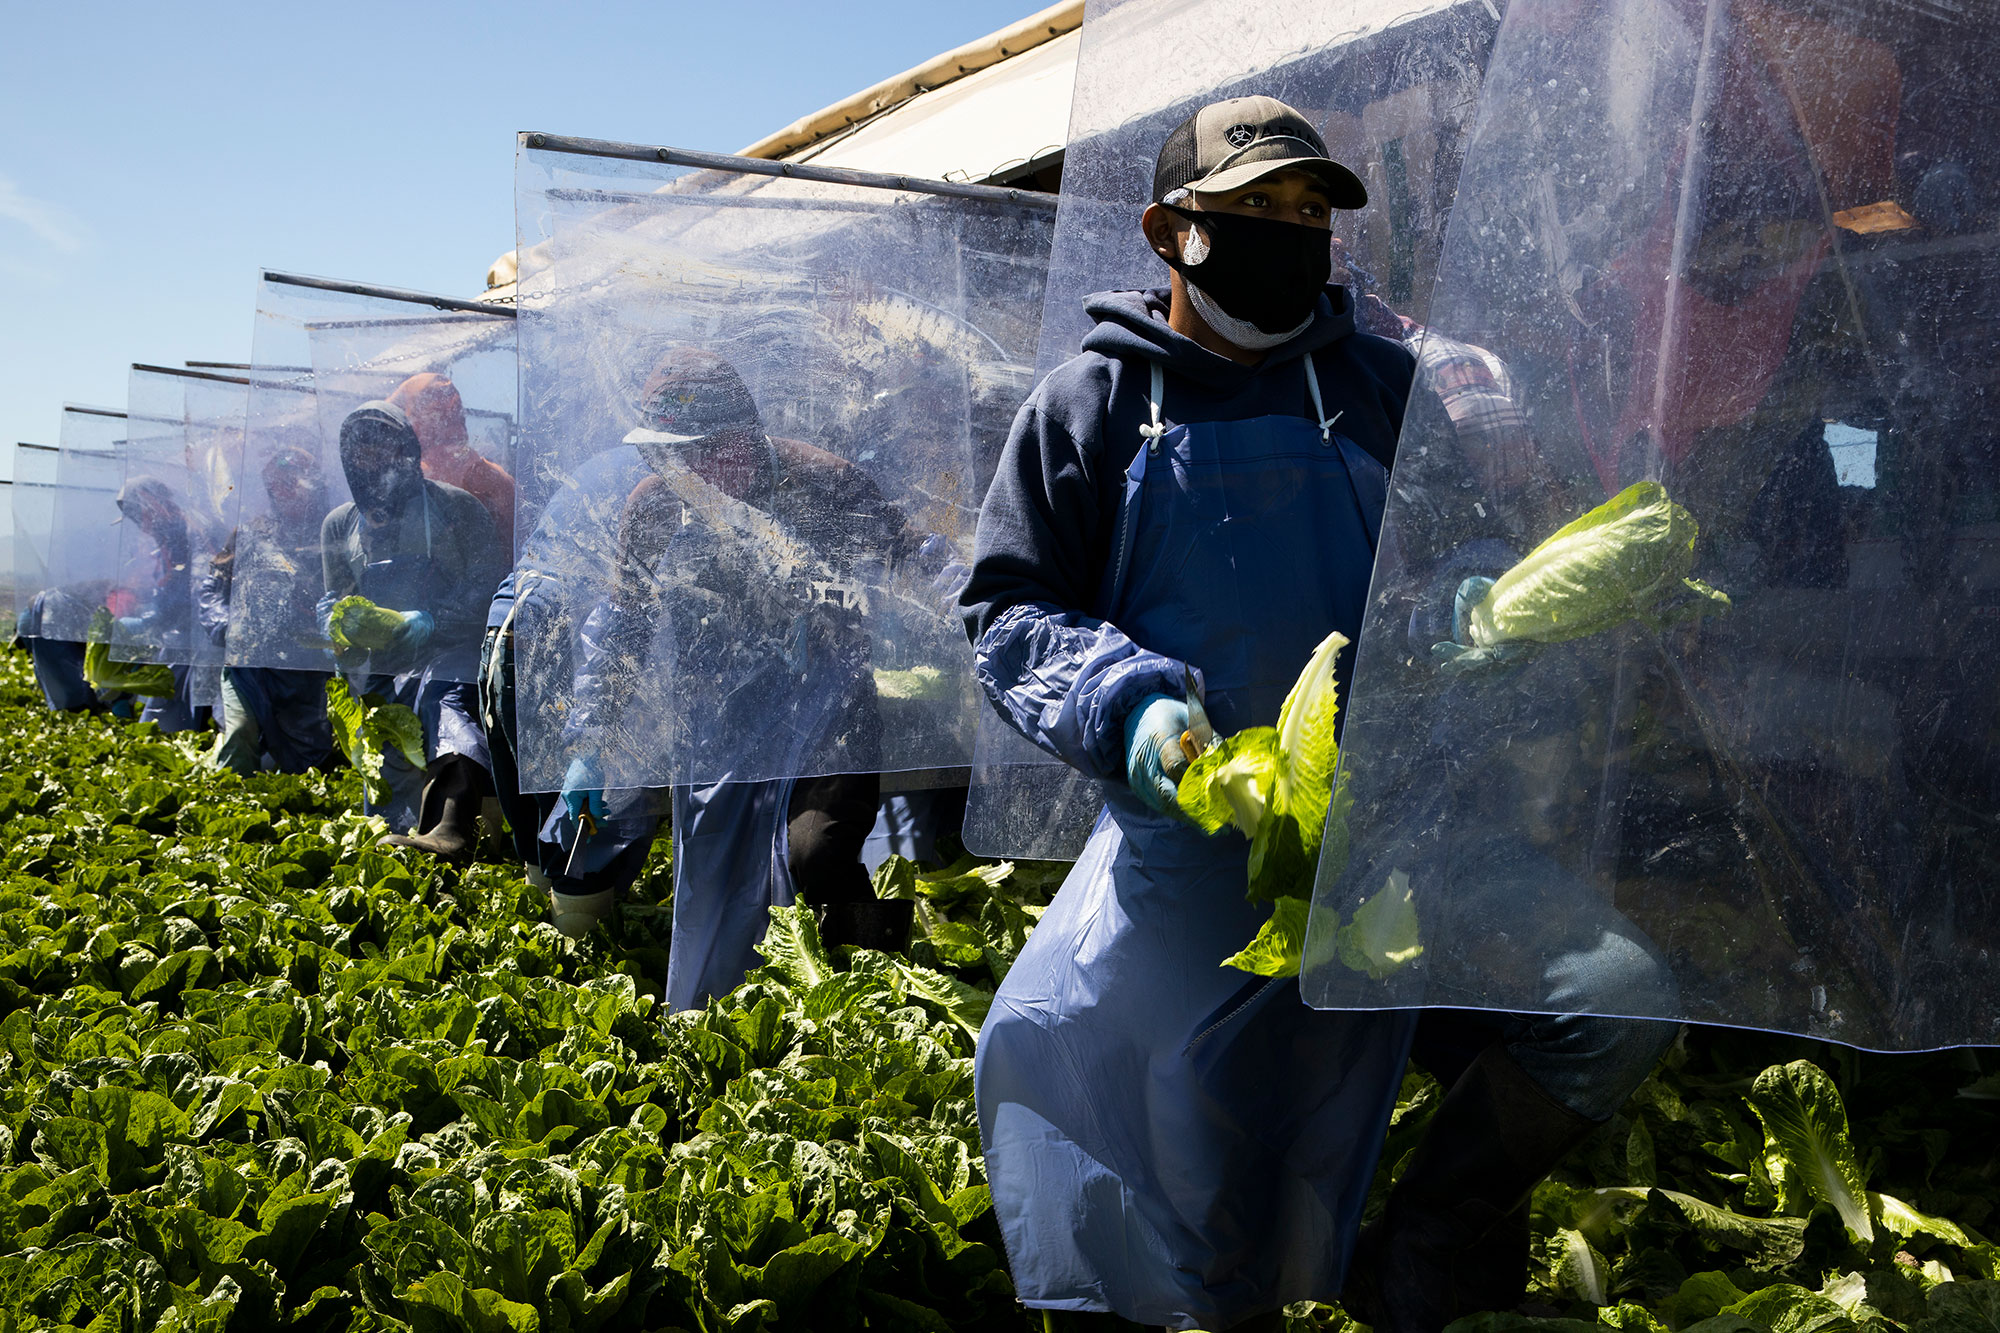 Immigrant Agricultural Workers Critical To U.S. Food Security Amid COVID-19 Outbreak